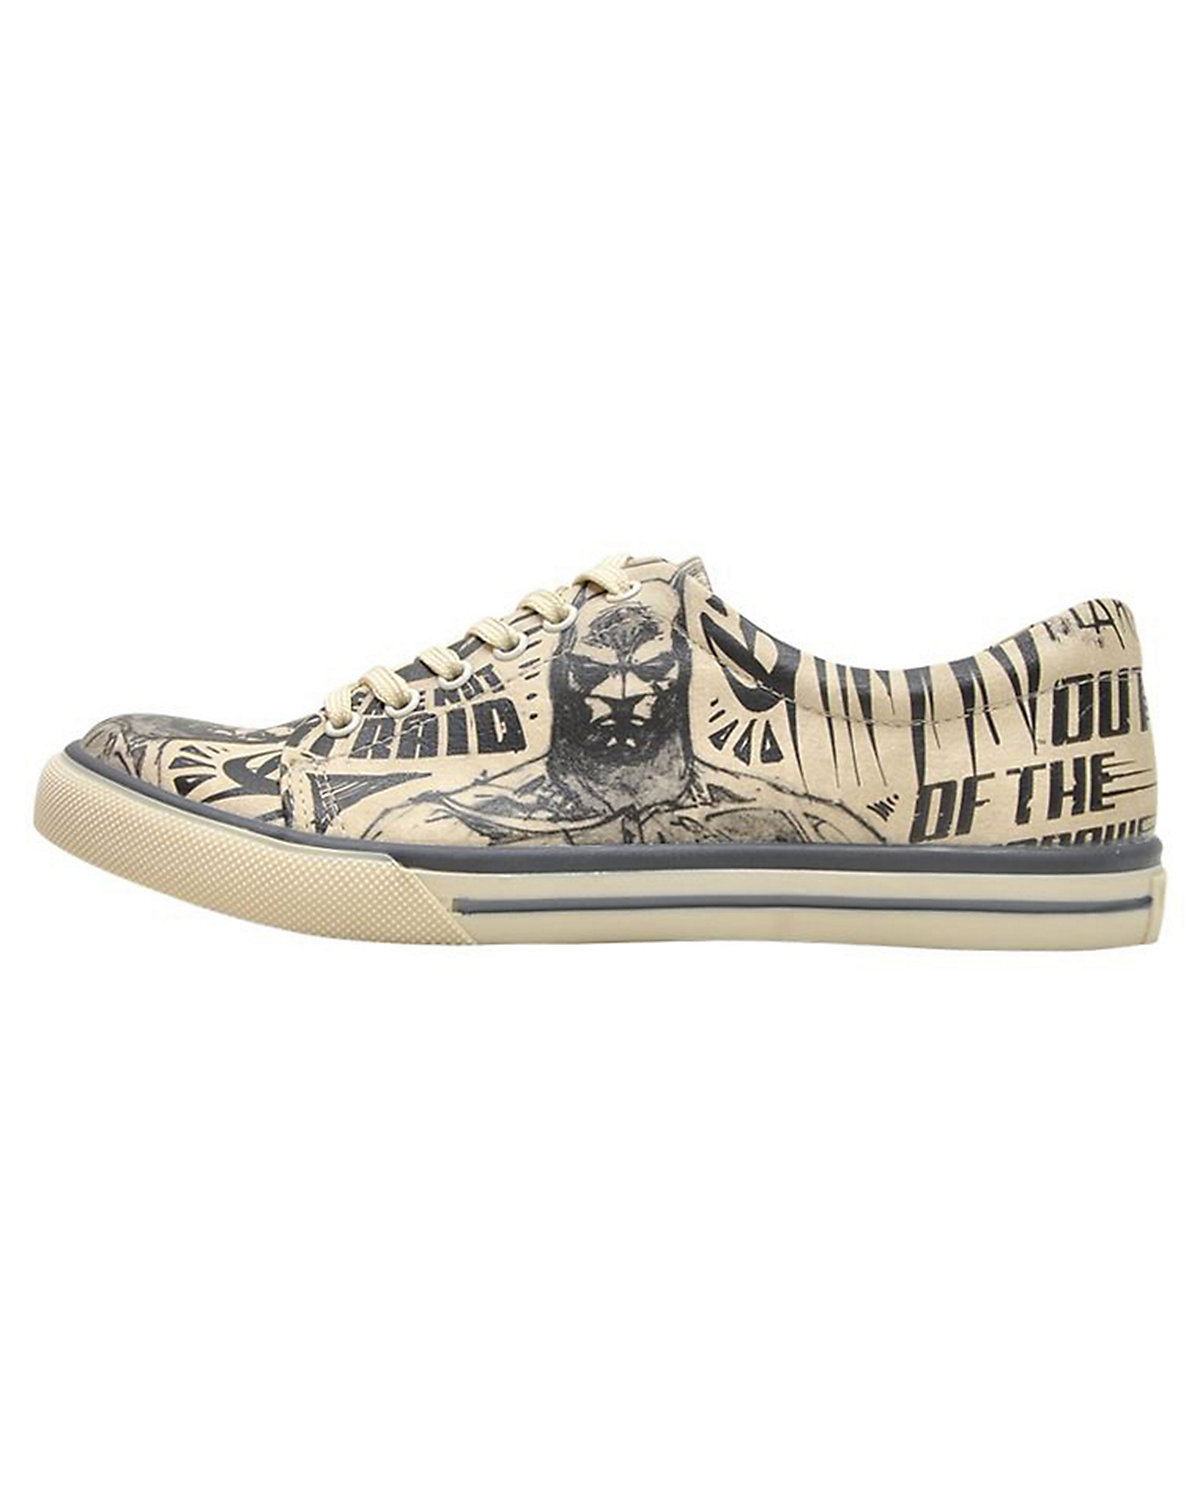 Dogo Sneakers Shoes, Sneakers Dogo Low Batman Sketch, mehrfarbig e45c62